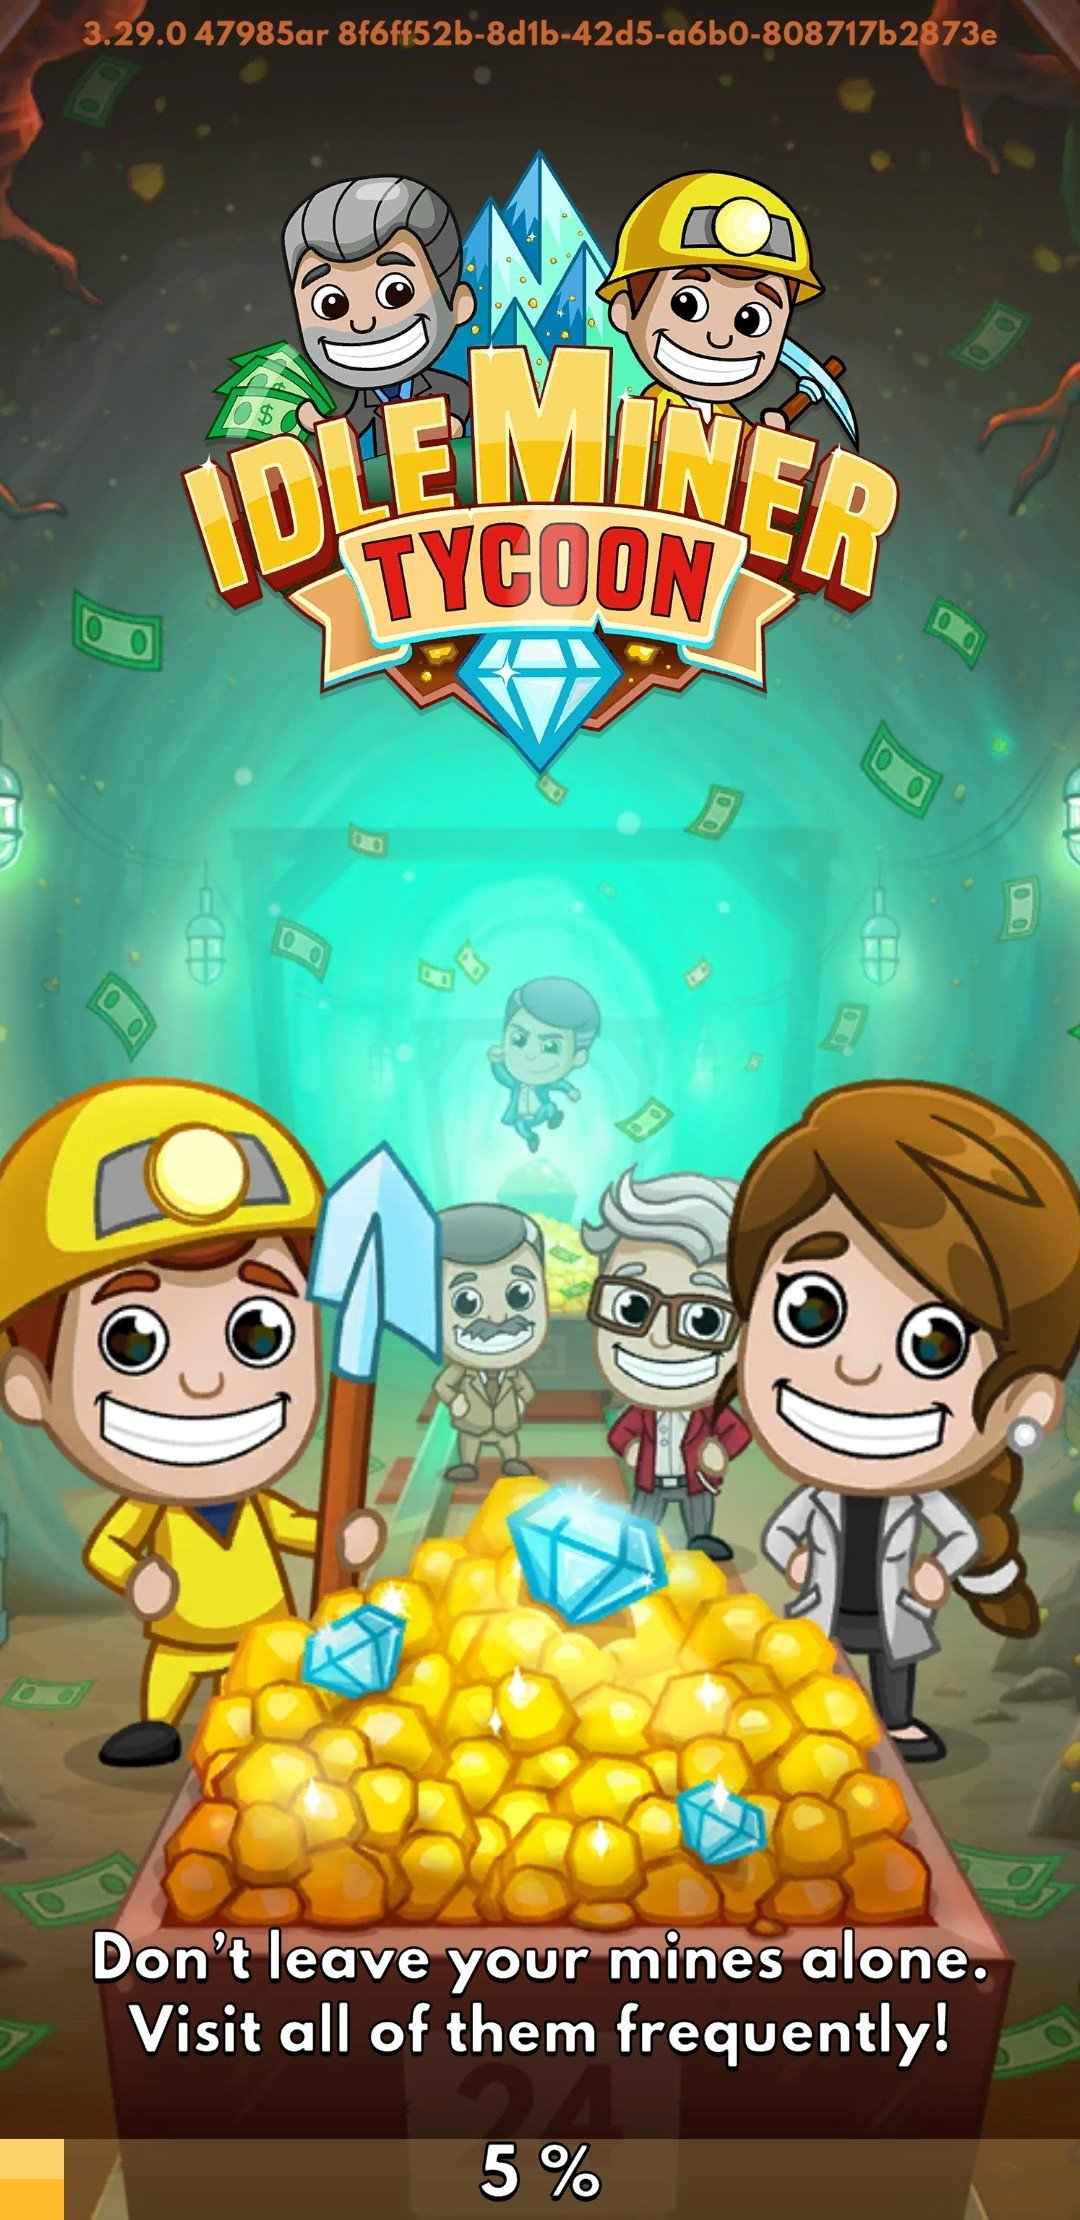 Idle Miner Tycoon Android image 8